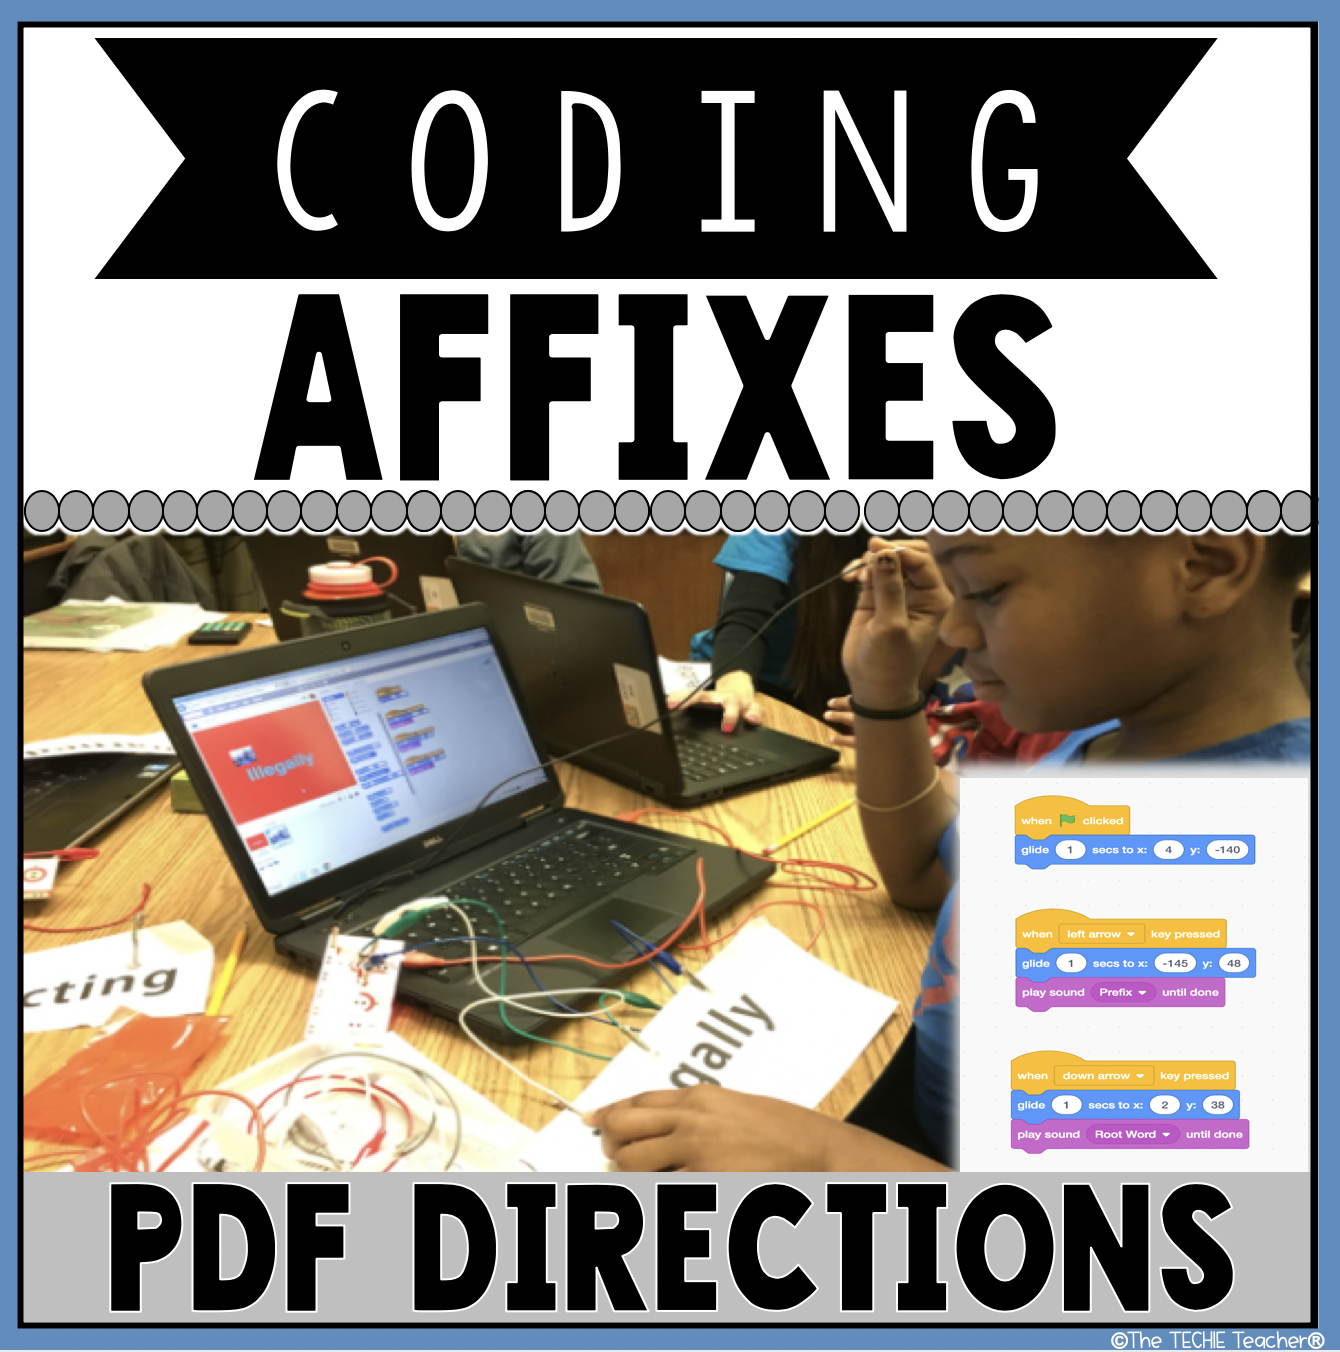 Students will have a blast coding affixes in Scratch 3.0. They will investigate prefixes, root words and suffixes with this digital activity. To take it a step further you can use a MaKey-MaKey invention kit.